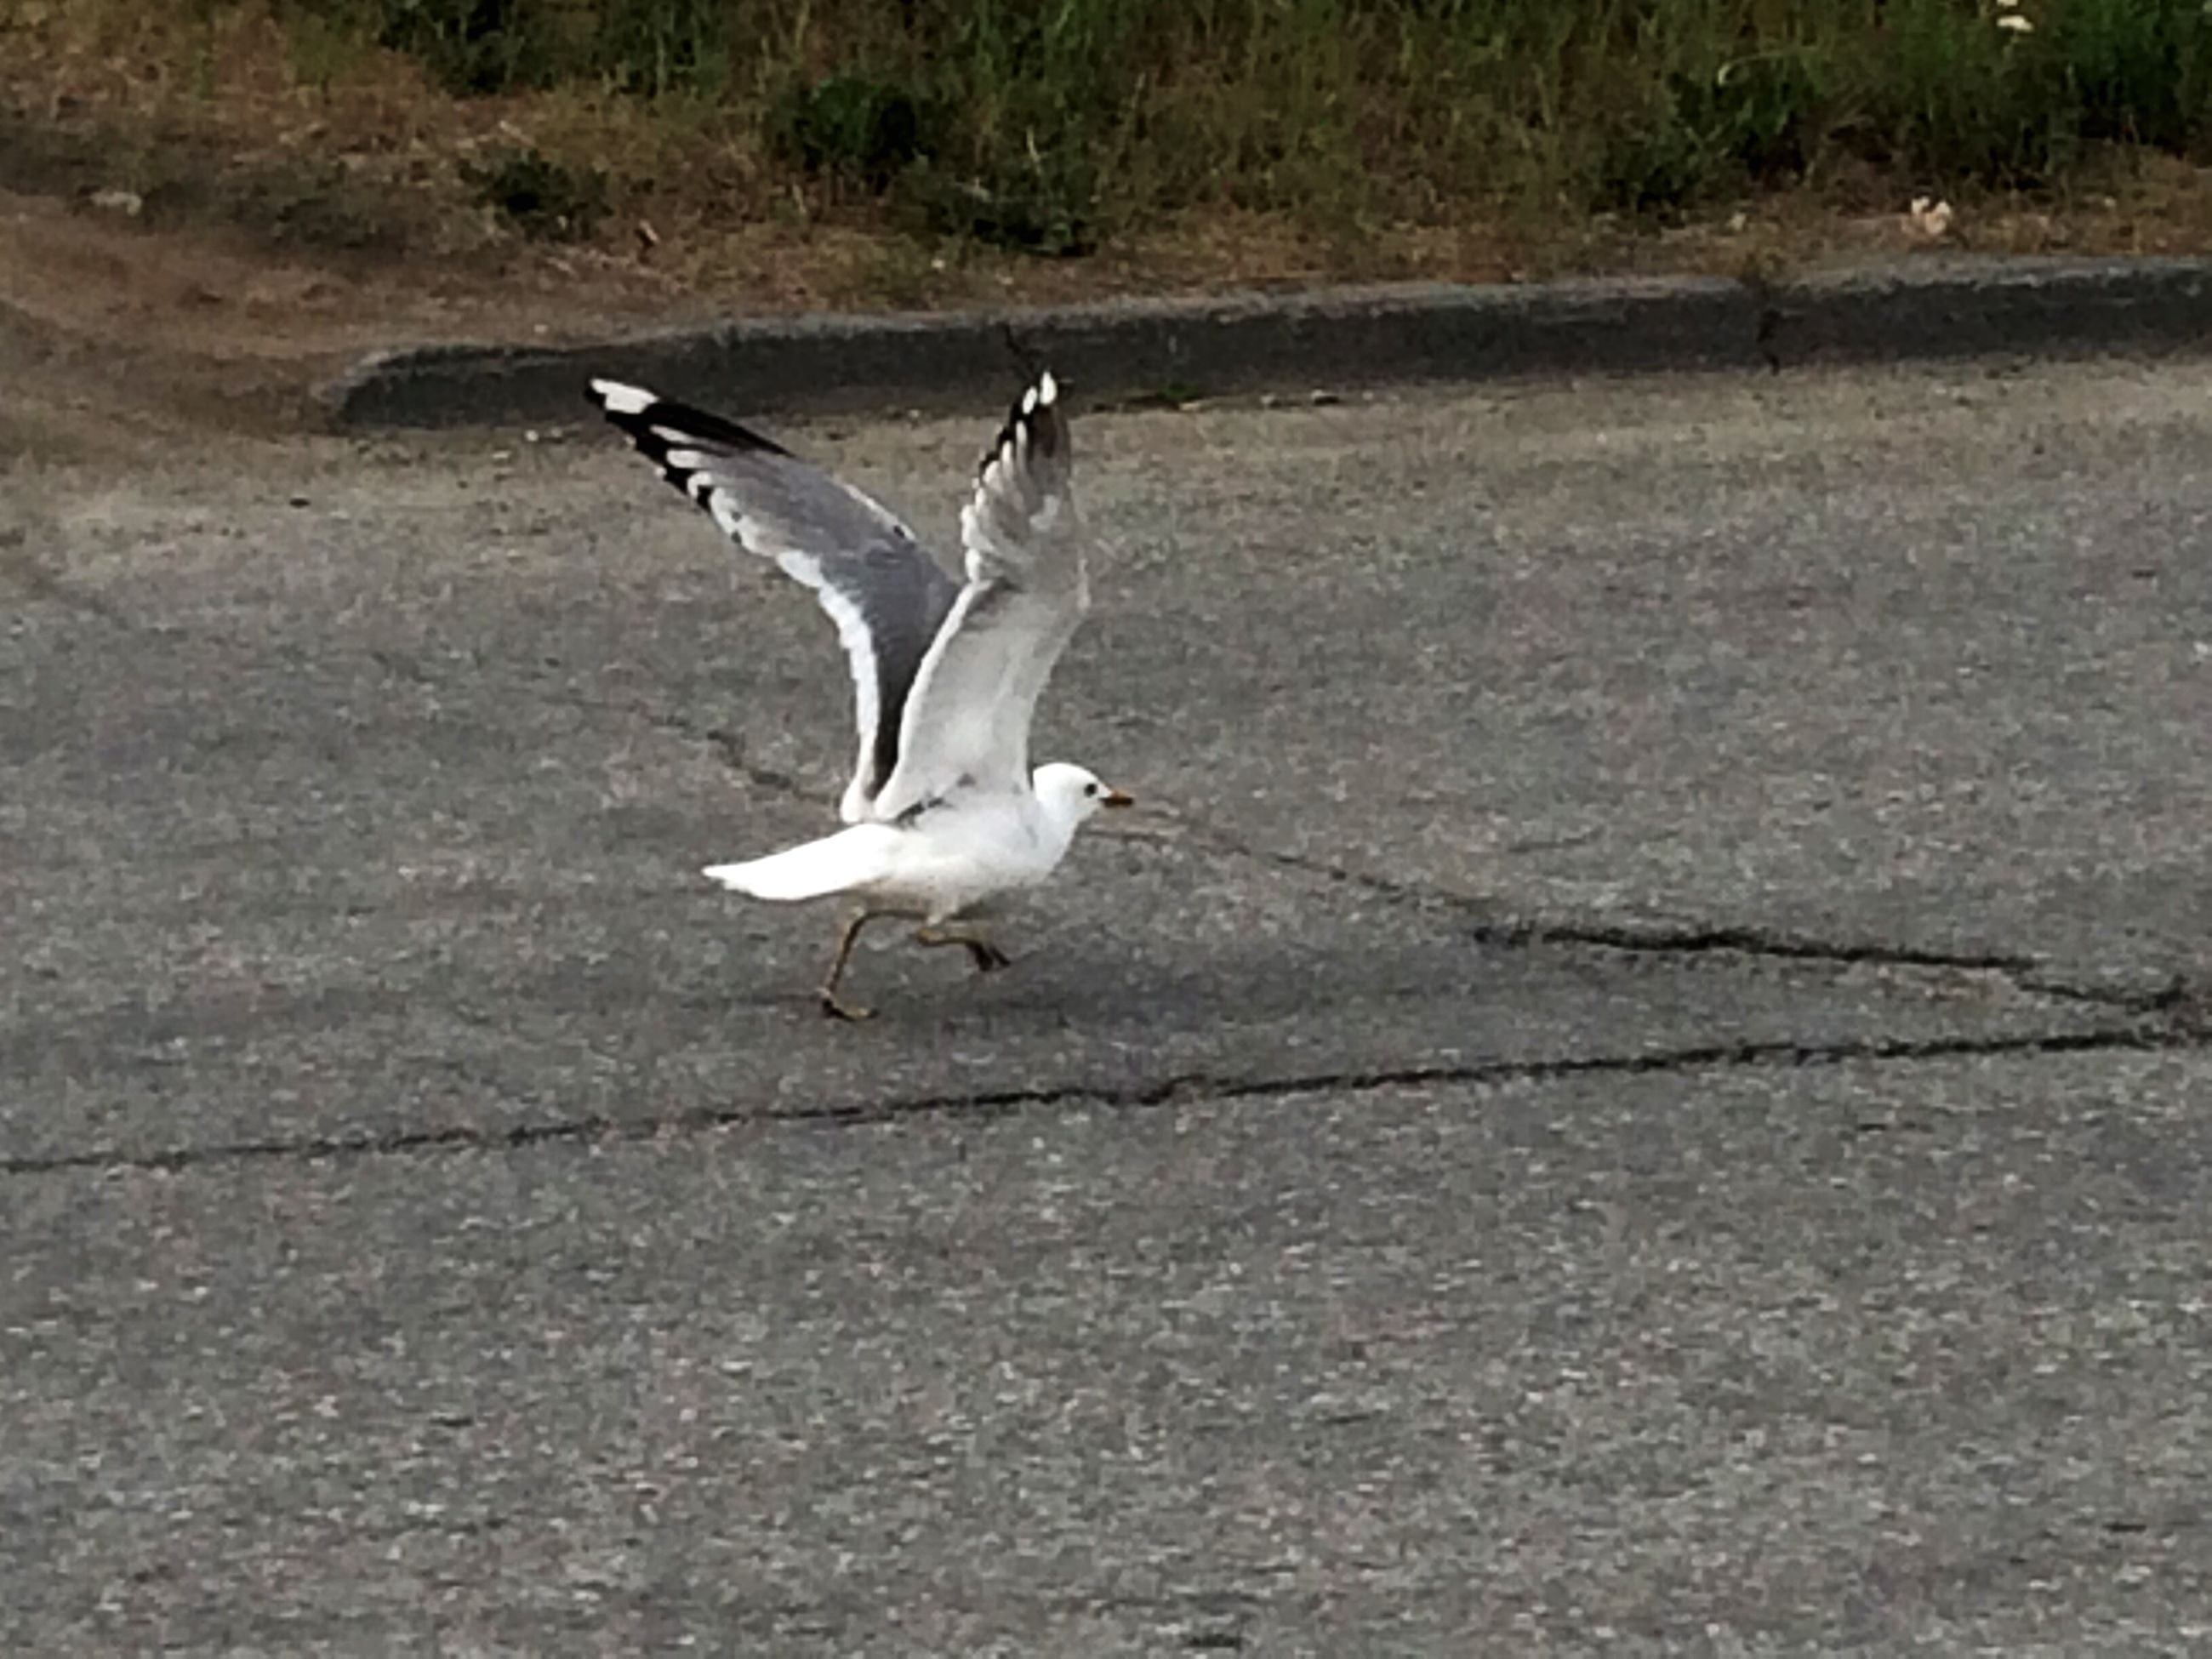 animal themes, bird, seagull, animals in the wild, one animal, wildlife, spread wings, flying, full length, white color, mid-air, side view, sunlight, nature, day, outdoors, motion, zoology, on the move, no people